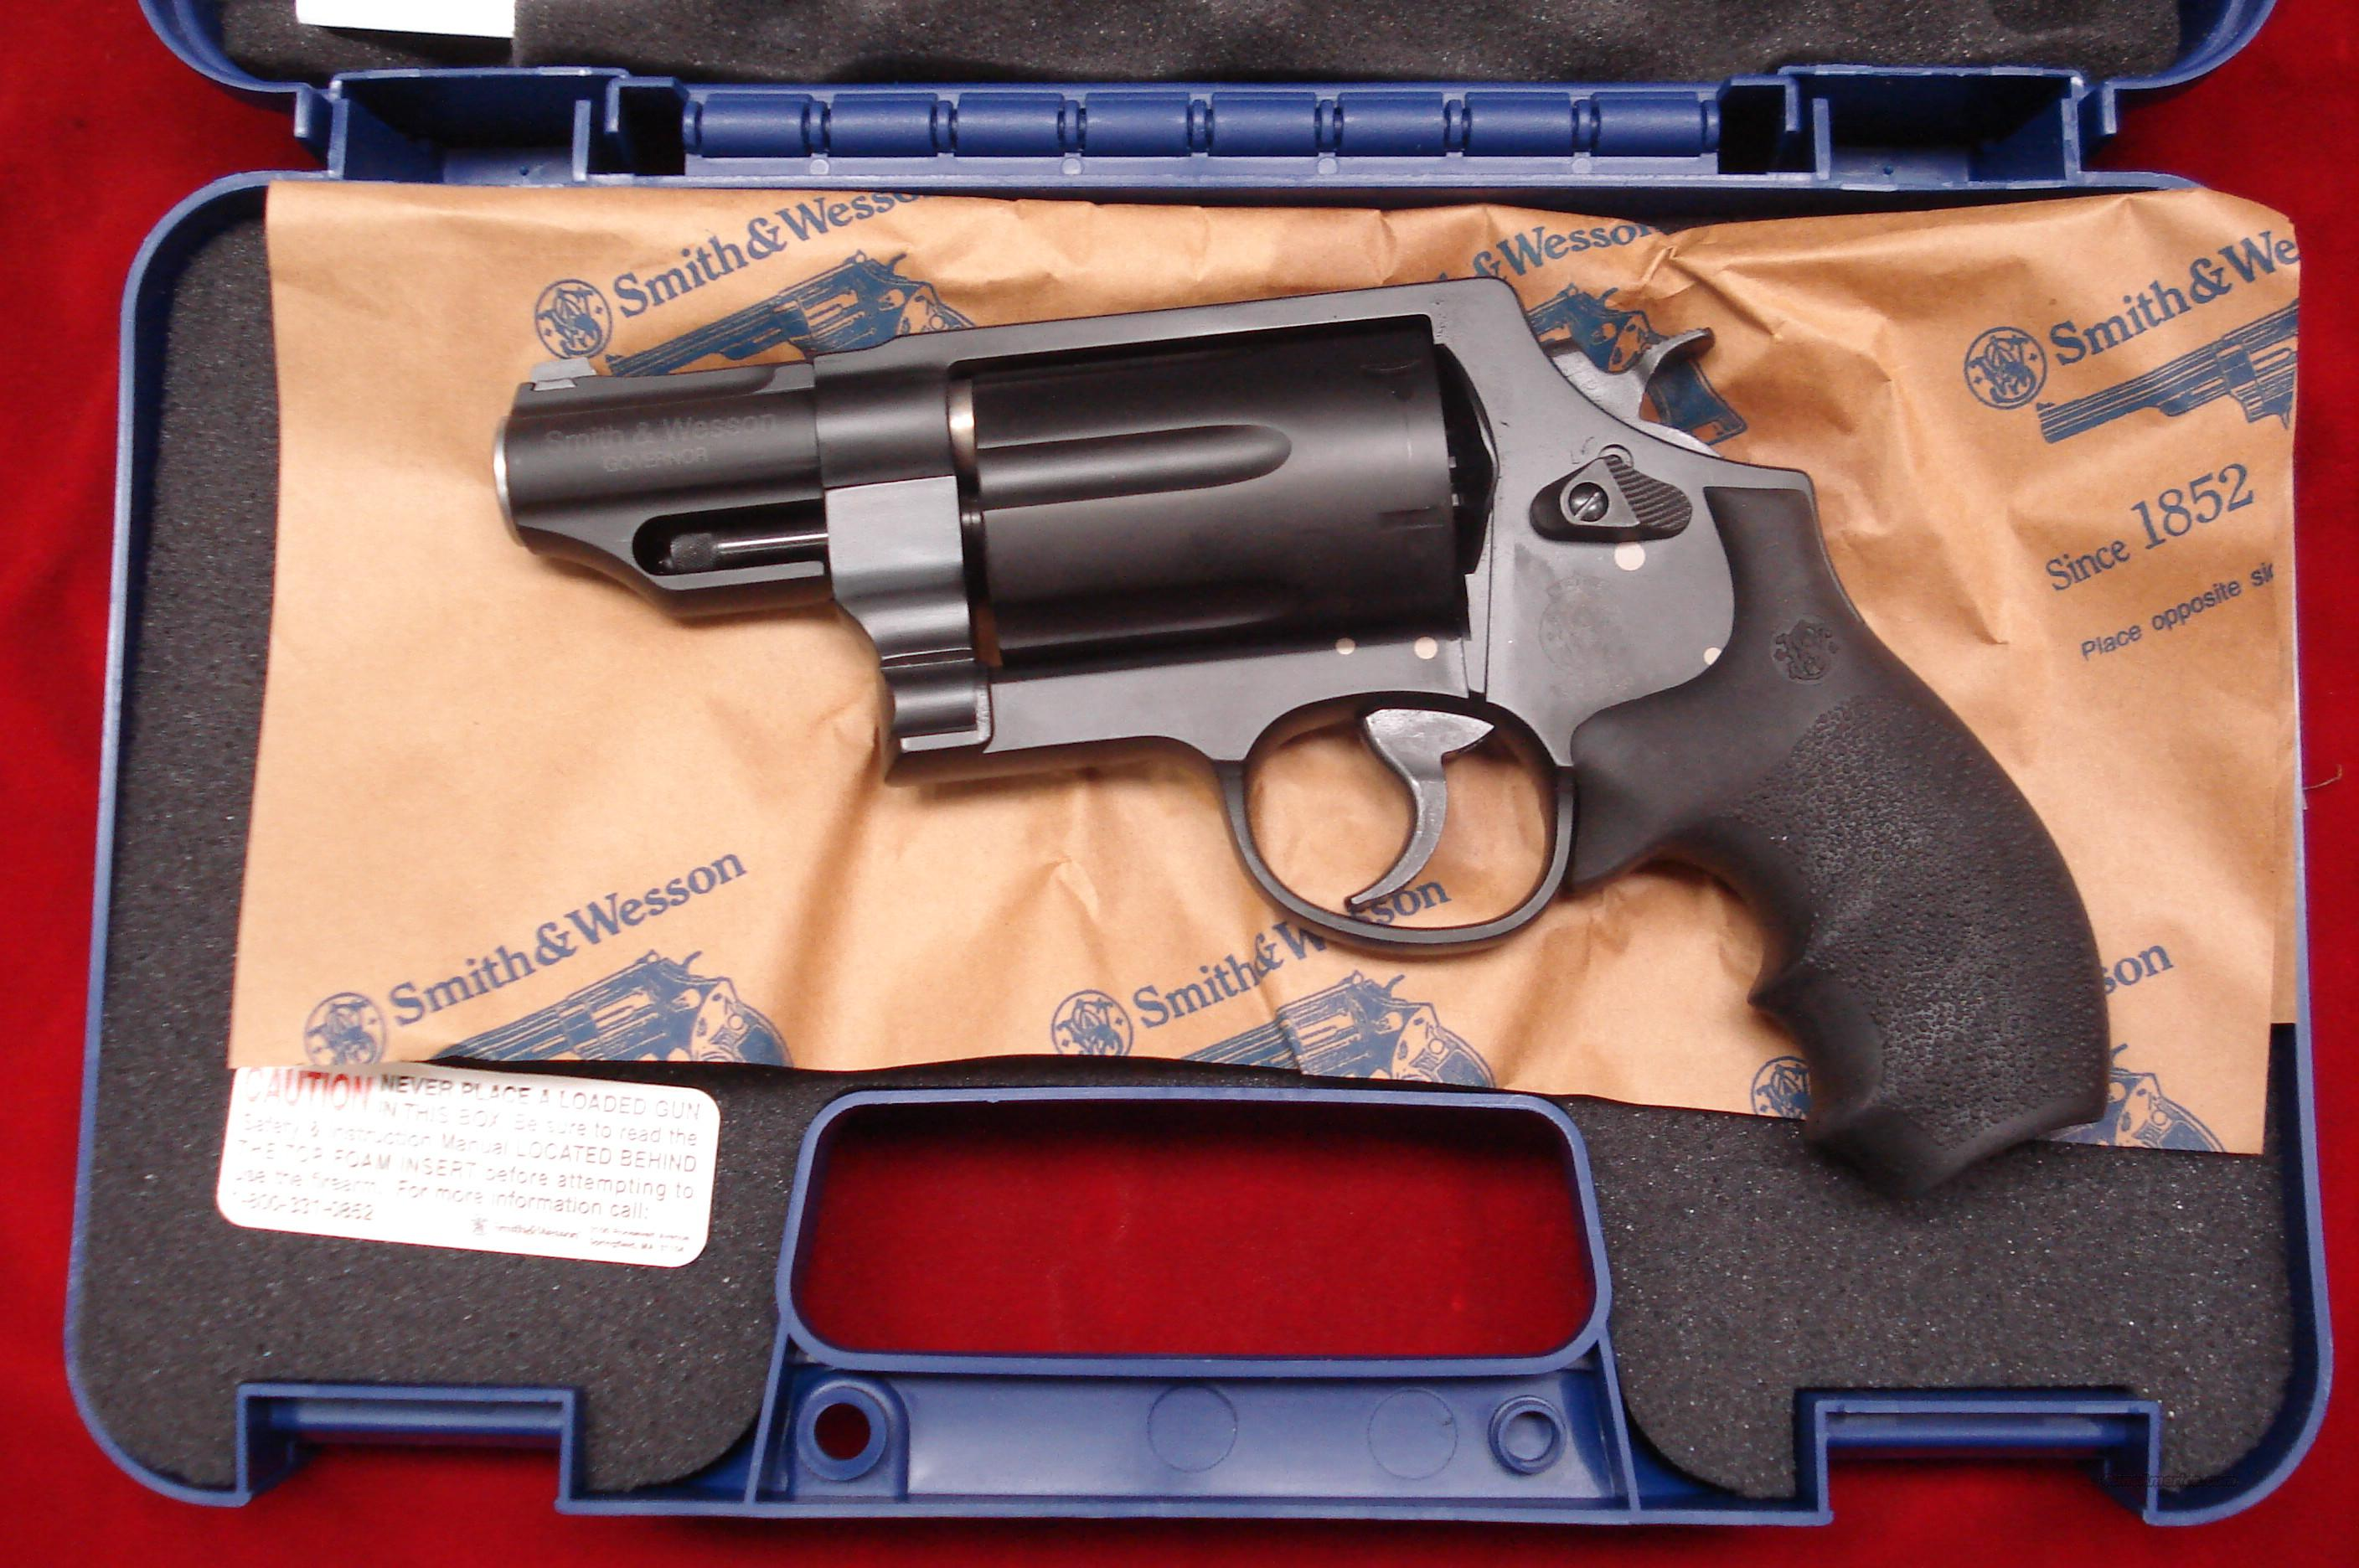 SMITH AND WESSON GOVERNOR 45COLT/45ACP/410G REVOLVER NEW  Guns > Pistols > Smith & Wesson Revolvers > Full Frame Revolver